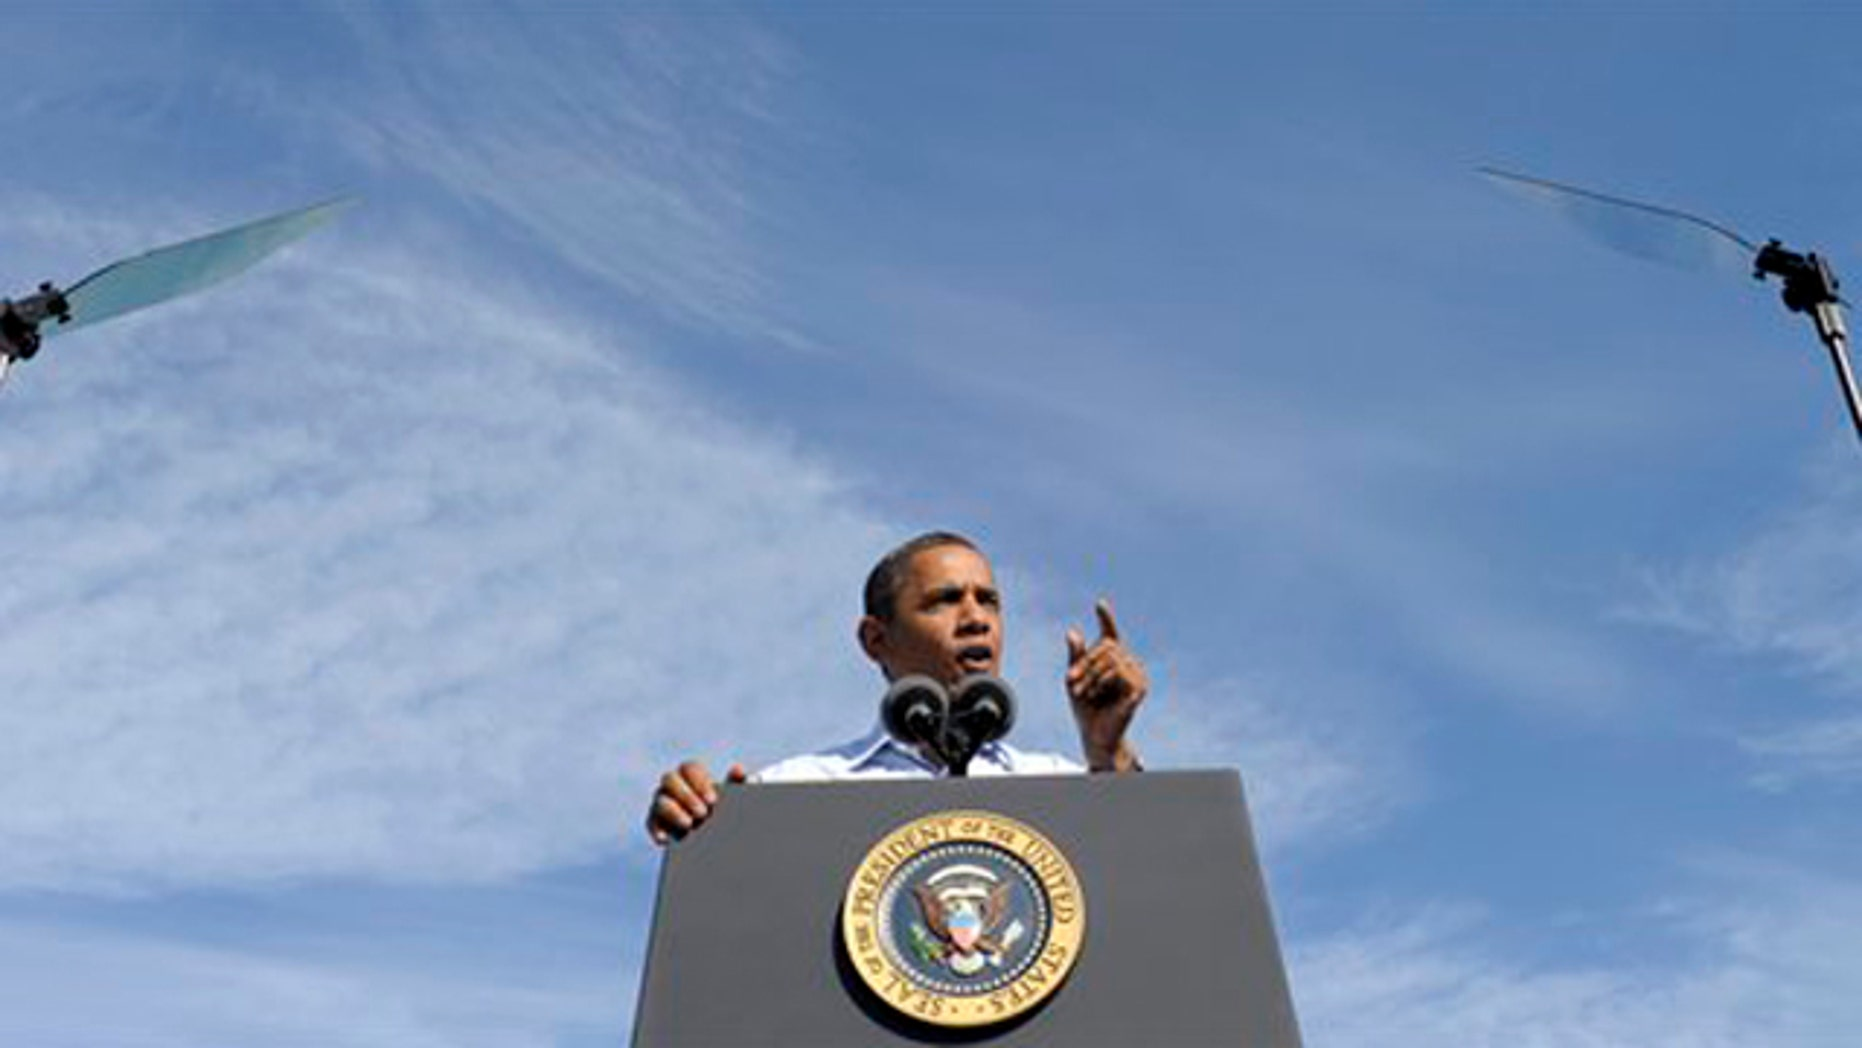 Oct. 17, 2011: President Obama speaks at Asheville Regional Airport in Fletcher, N.C., at the start of his three-day bus tour.